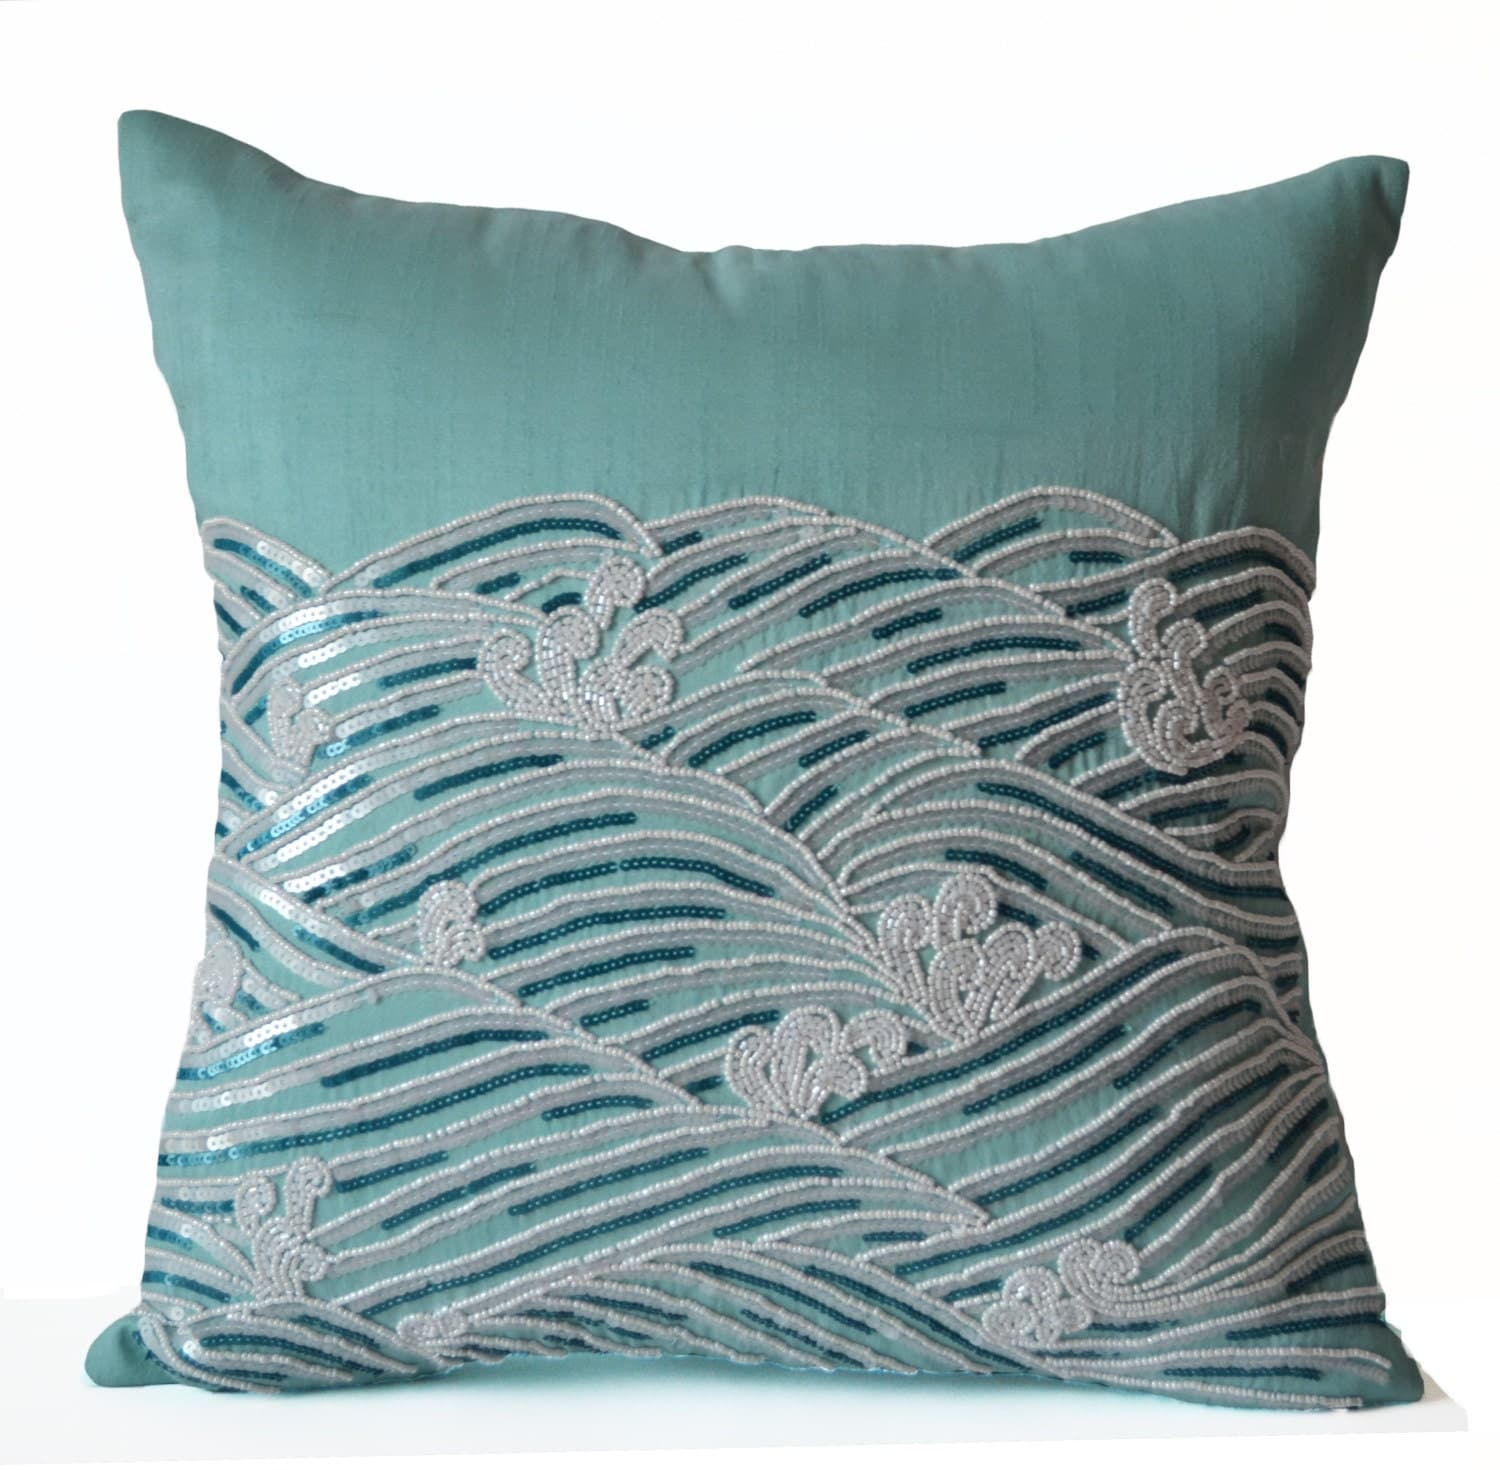 Decorative Pillows With Teal : Decorative Pillow Cover Teal Throw Pillows Sequin Accent